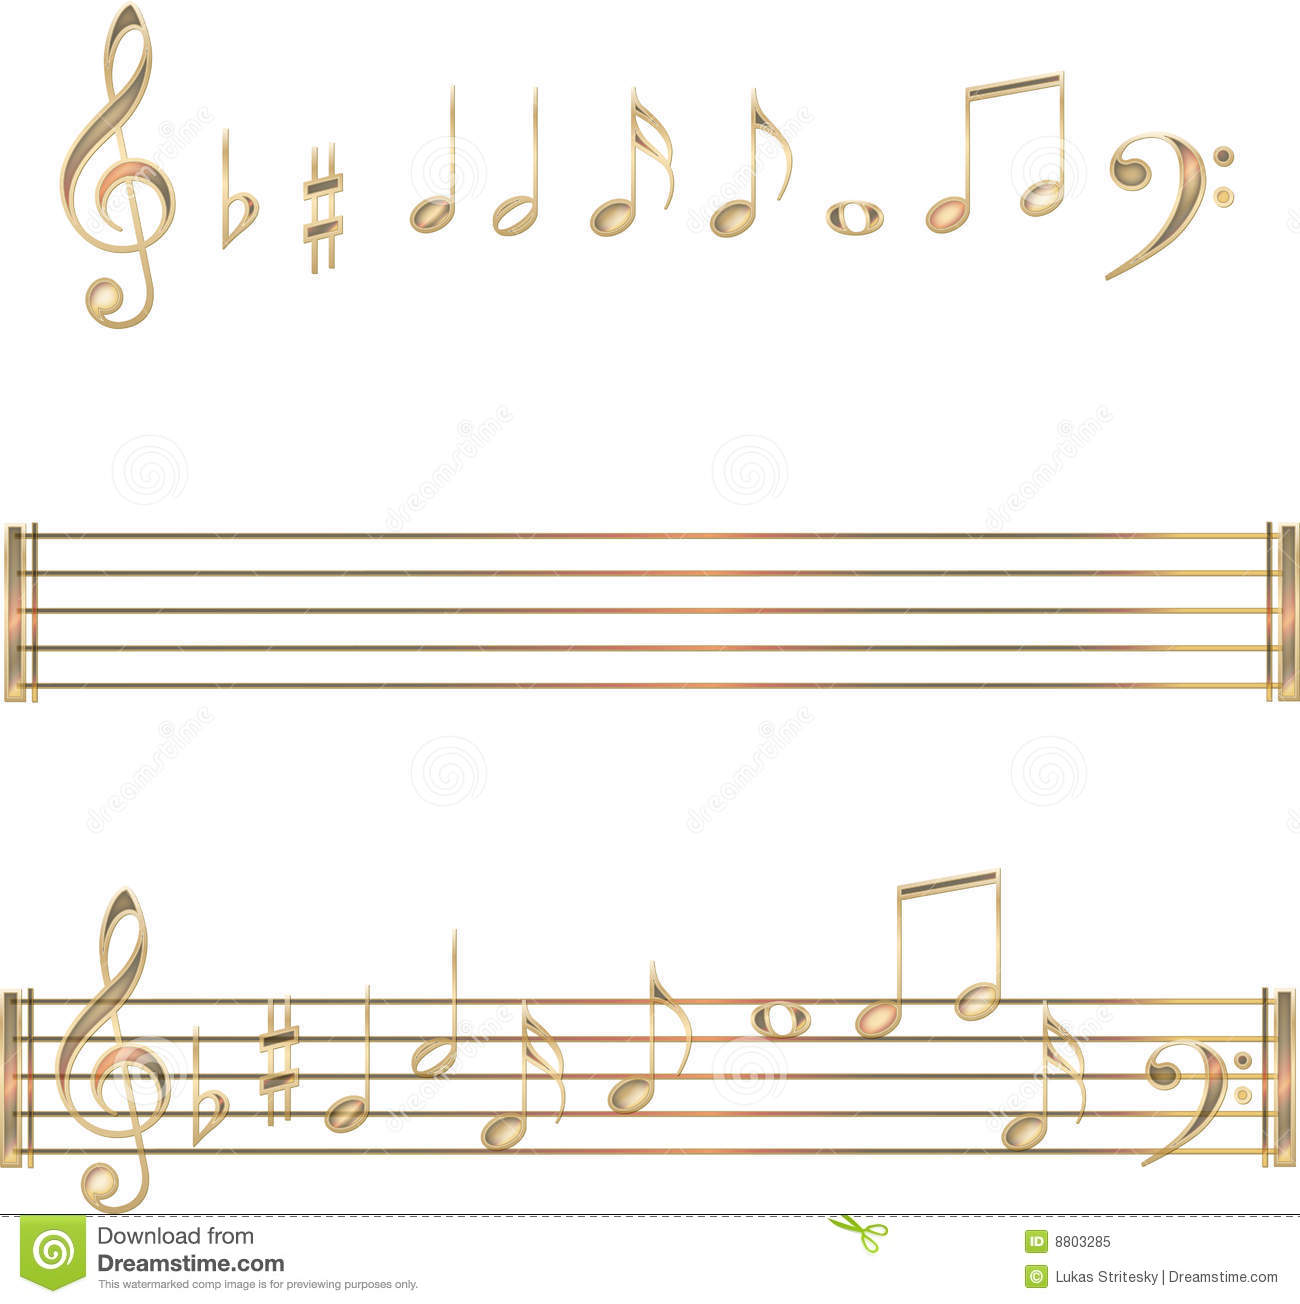 gold musical notes symbols with keys (clef, cleves). Staves (musical ...